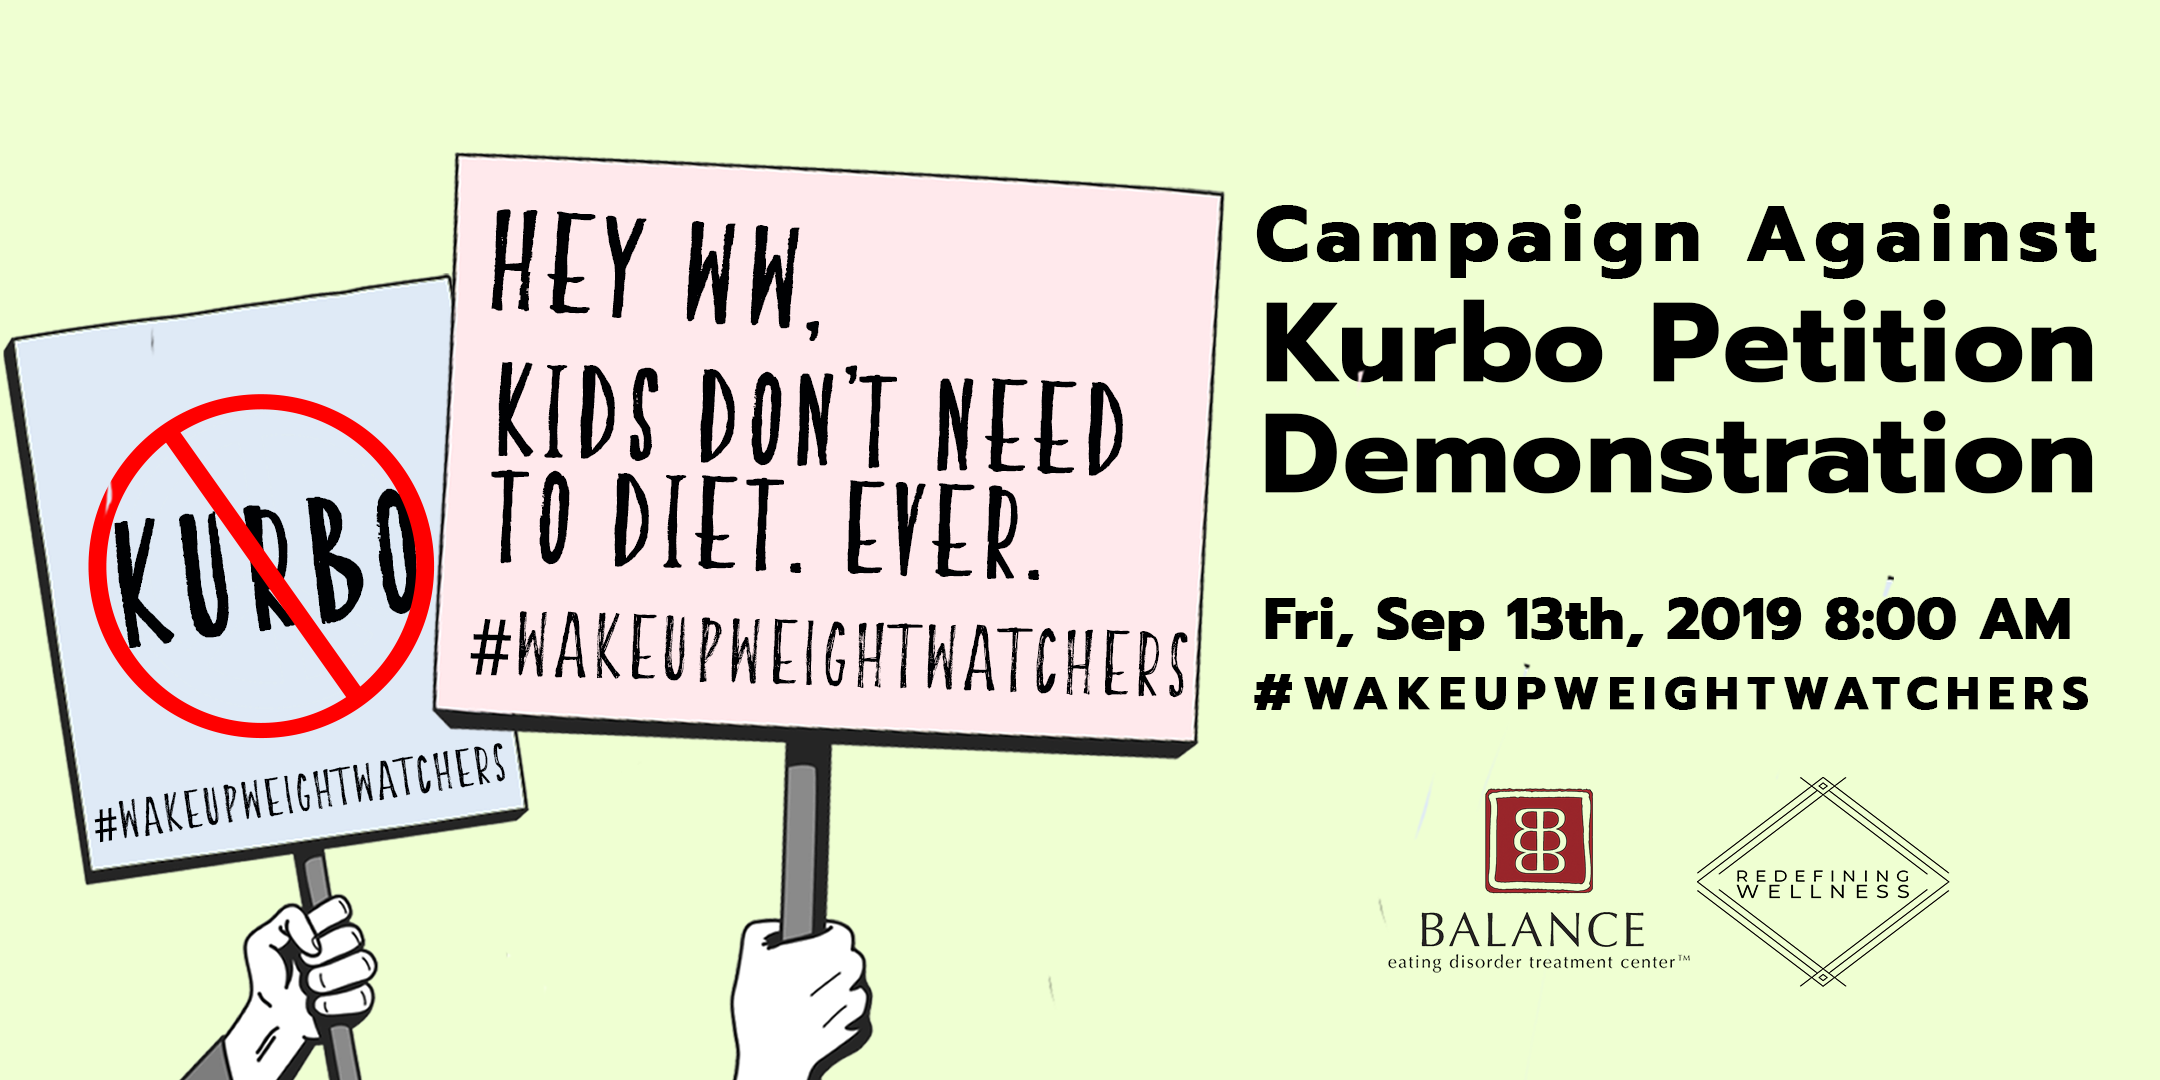 wakeupweightwatchers-ww-kurbo-petition-demonstration-nyc-balance-eating-disorder